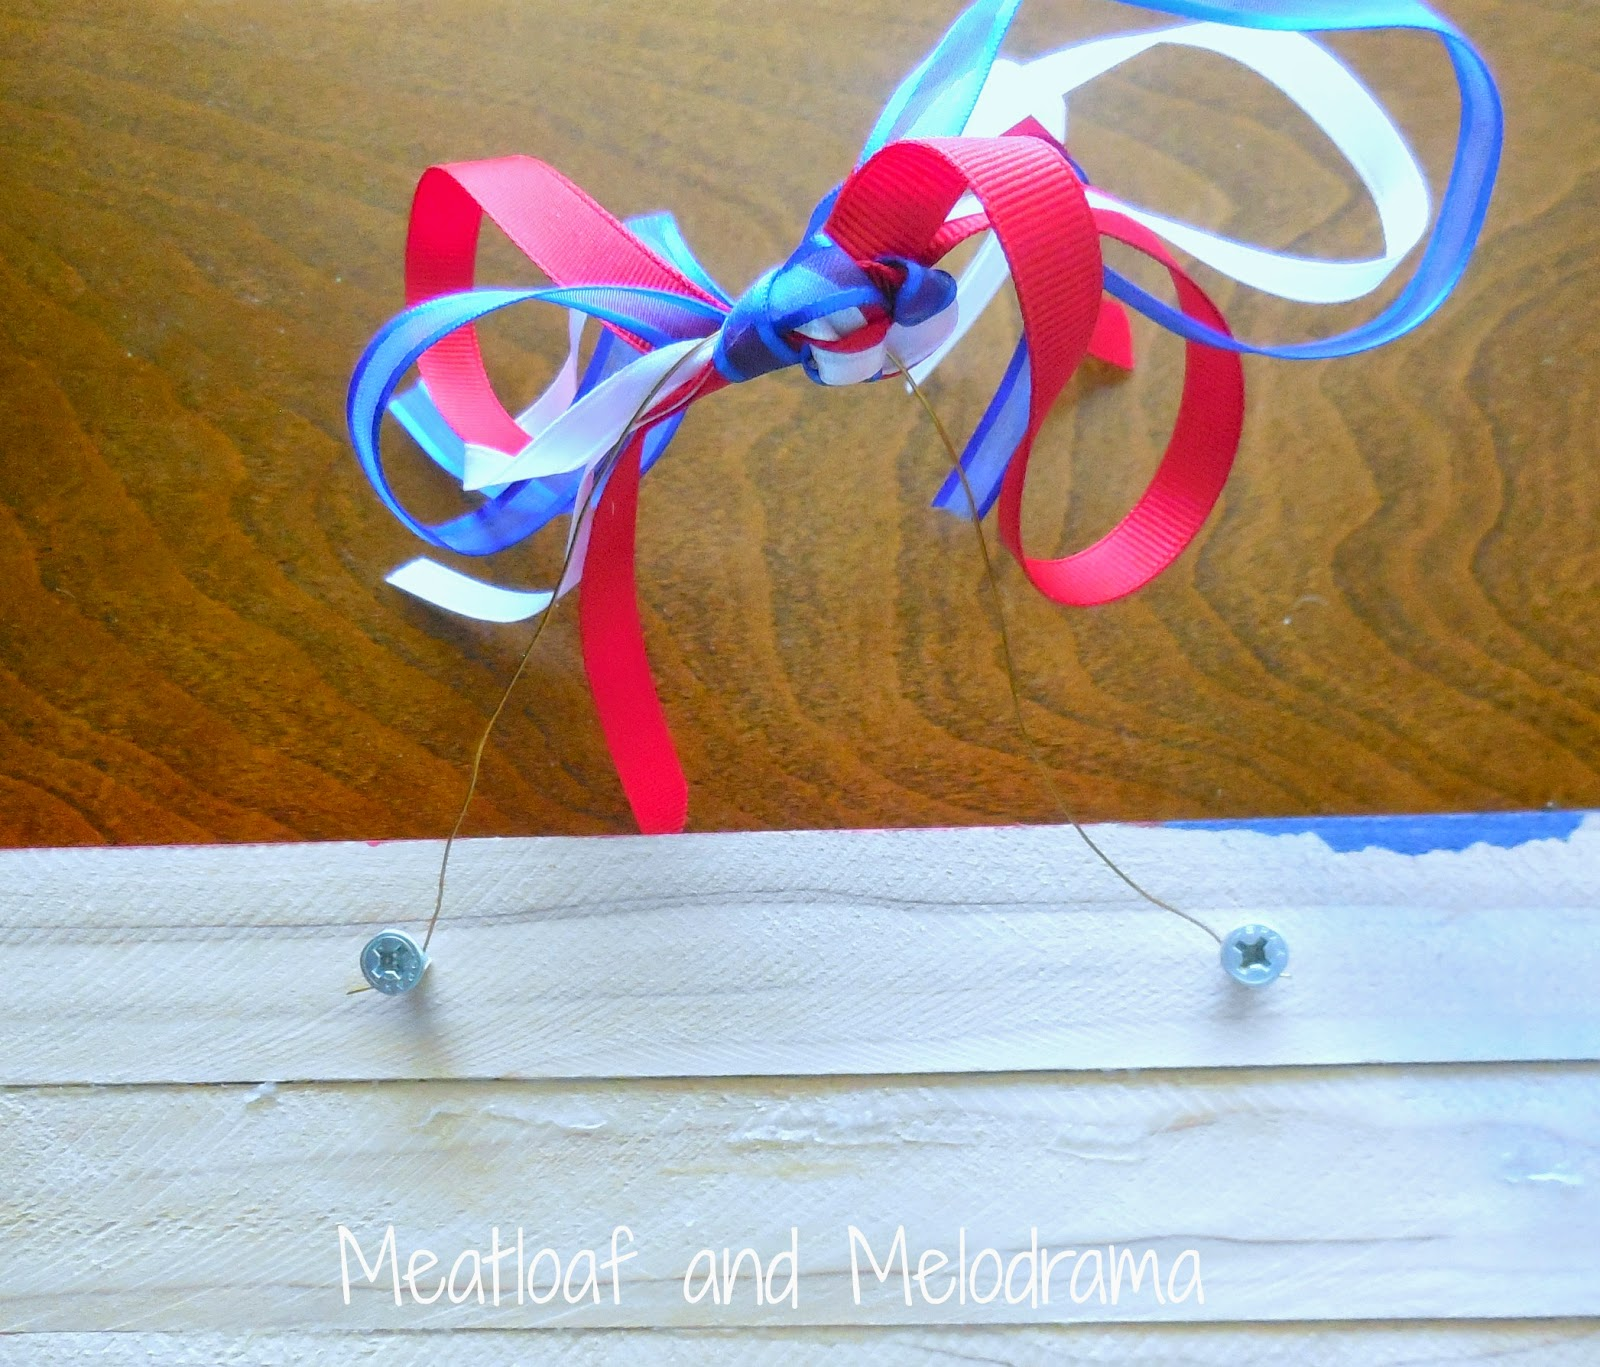 attach wire to back of flag with screws and add ribbon